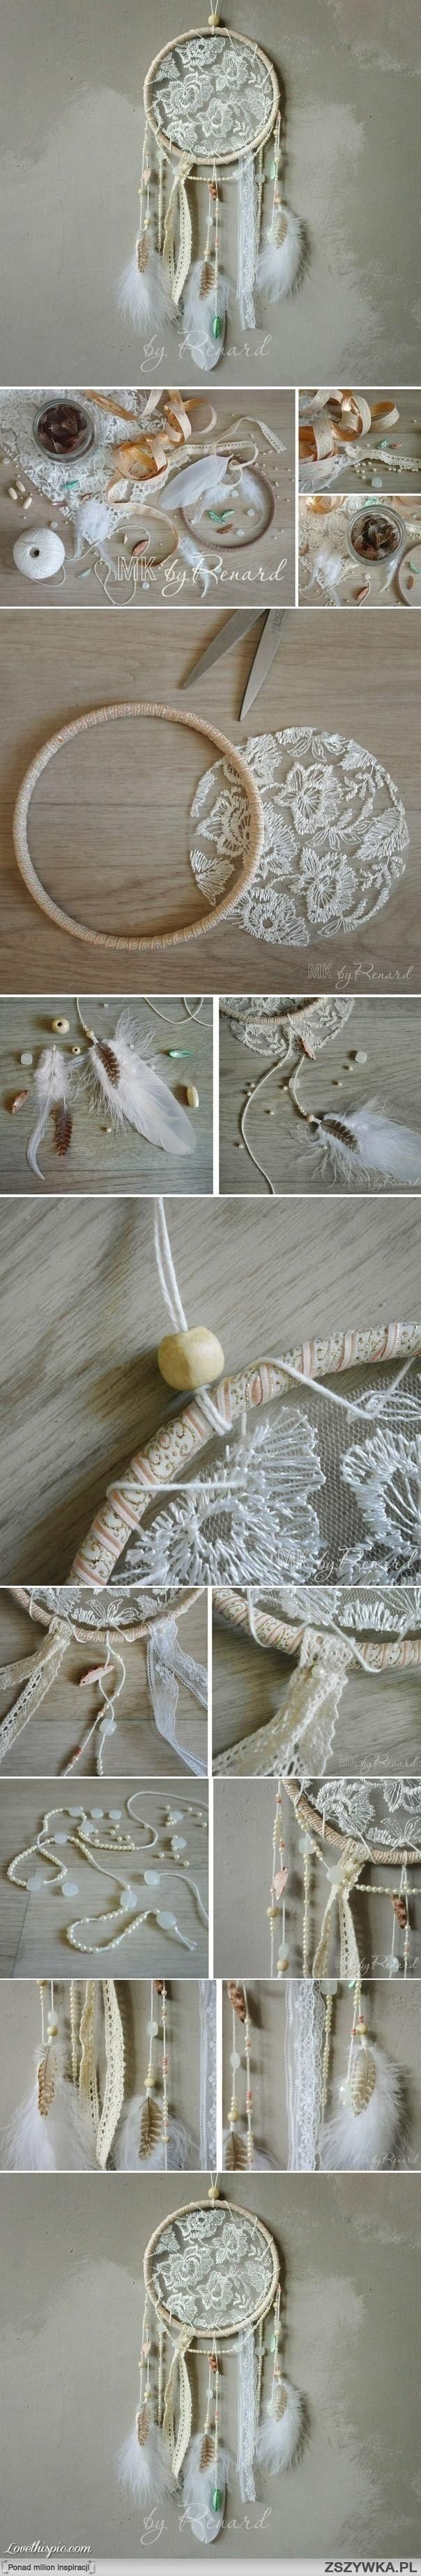 Step by step how to make a lace dreamcatcher.